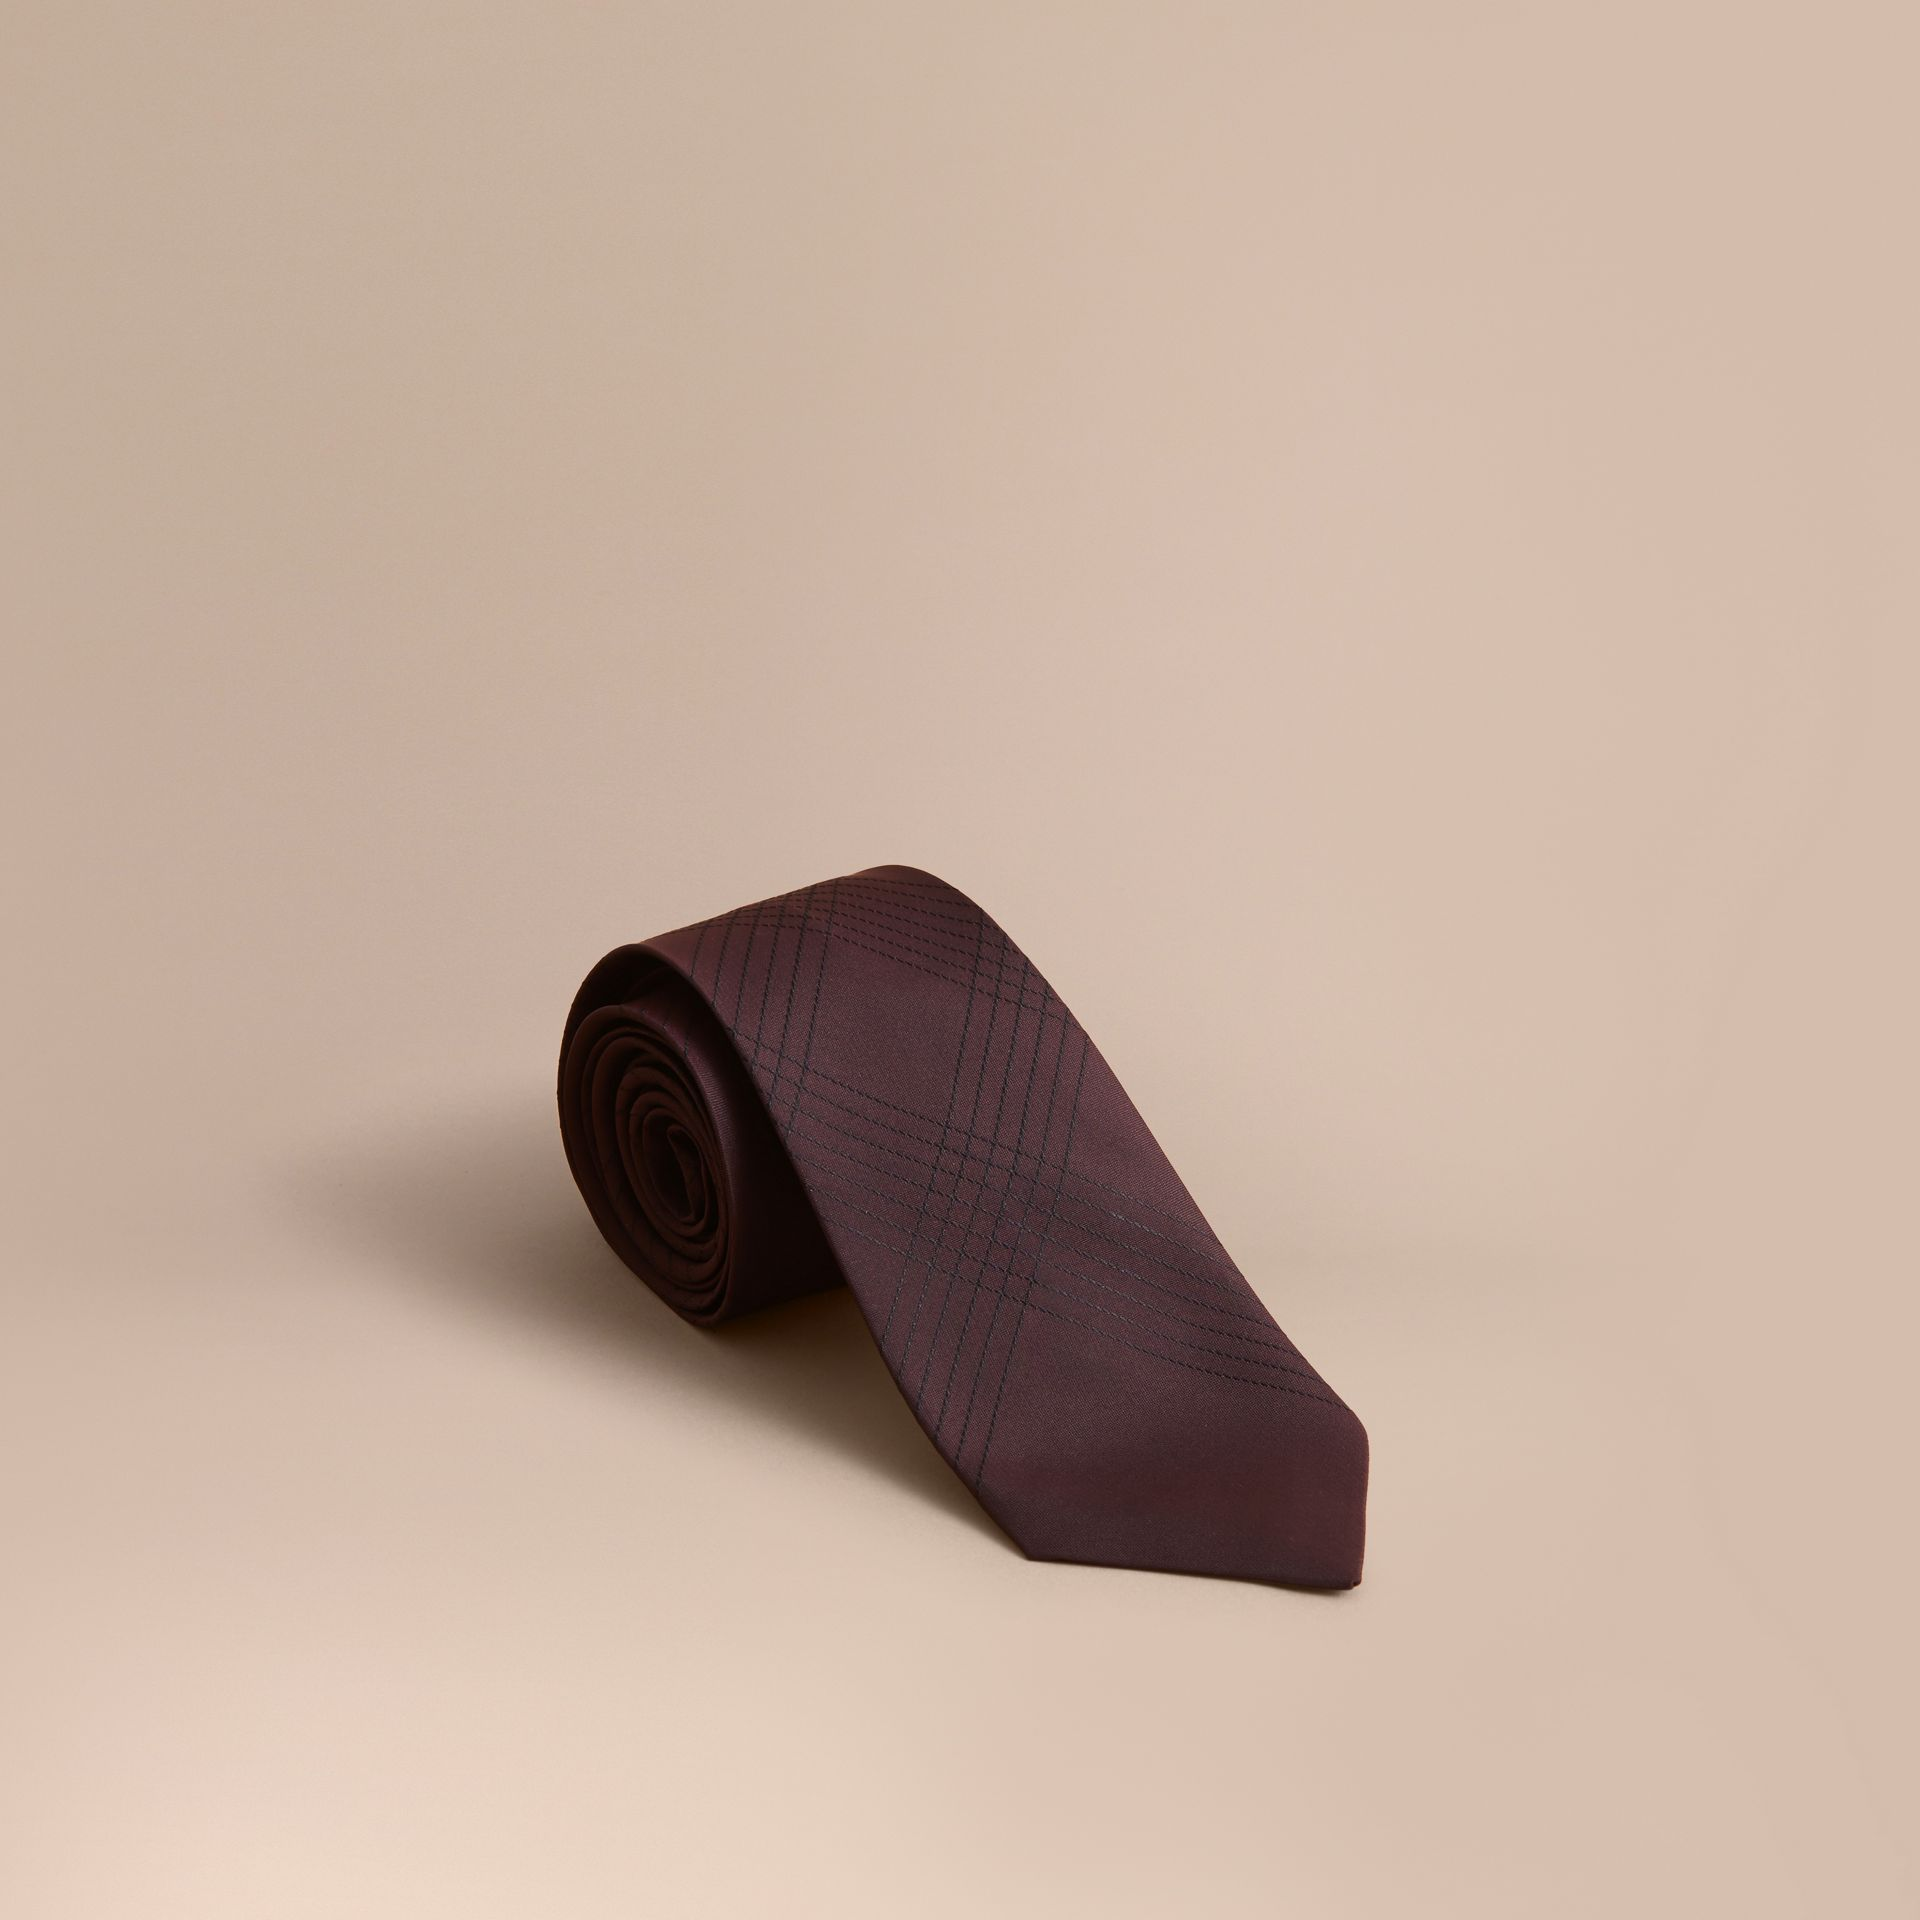 Modern Cut Topstitched Check Silk Tie in Burgundy - Men | Burberry Australia - gallery image 1